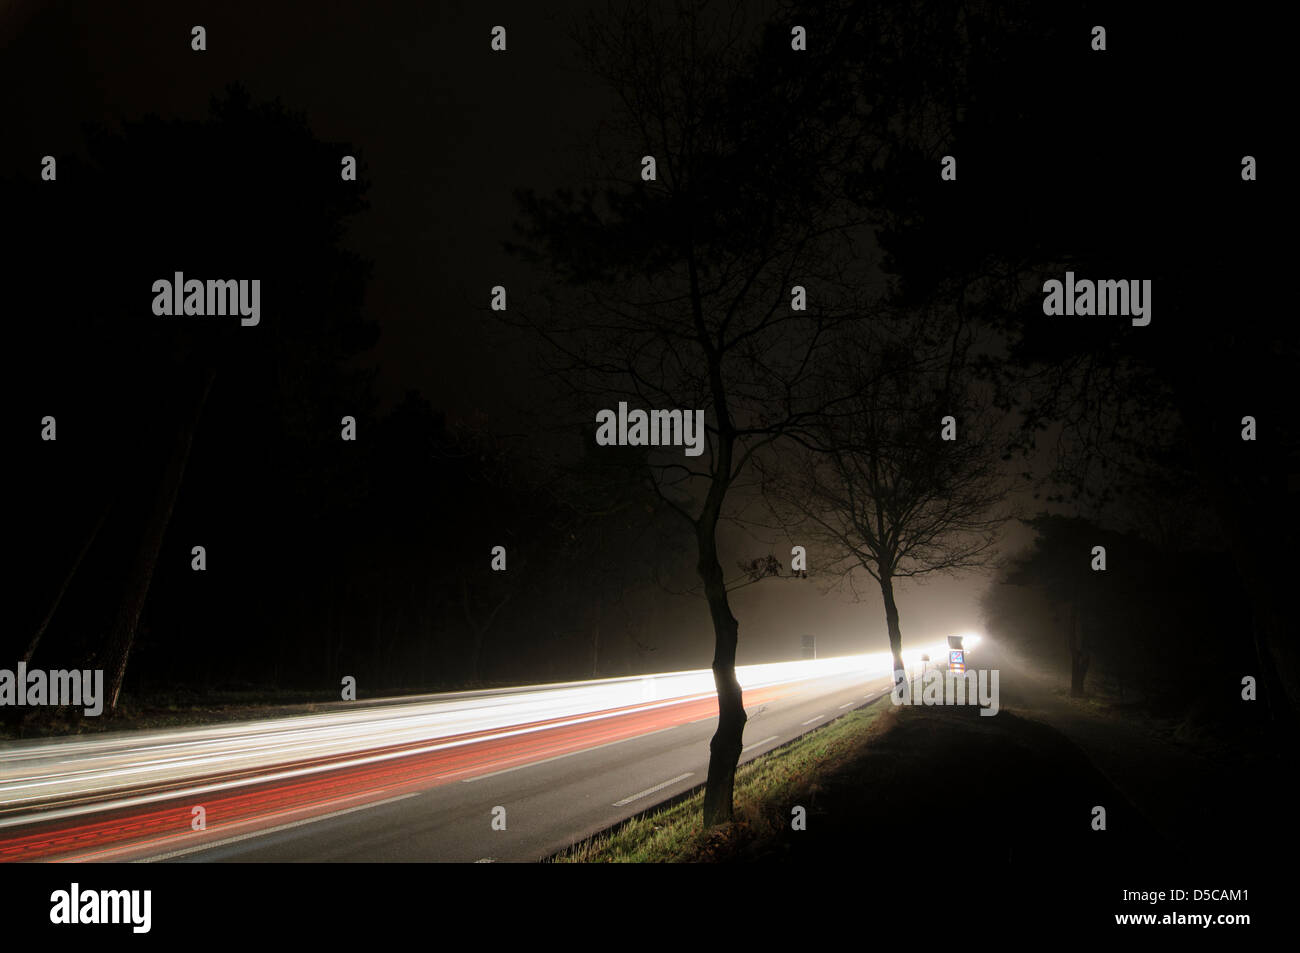 Long exposed night image of cars with lights on a dark road through a forest - Stock Image